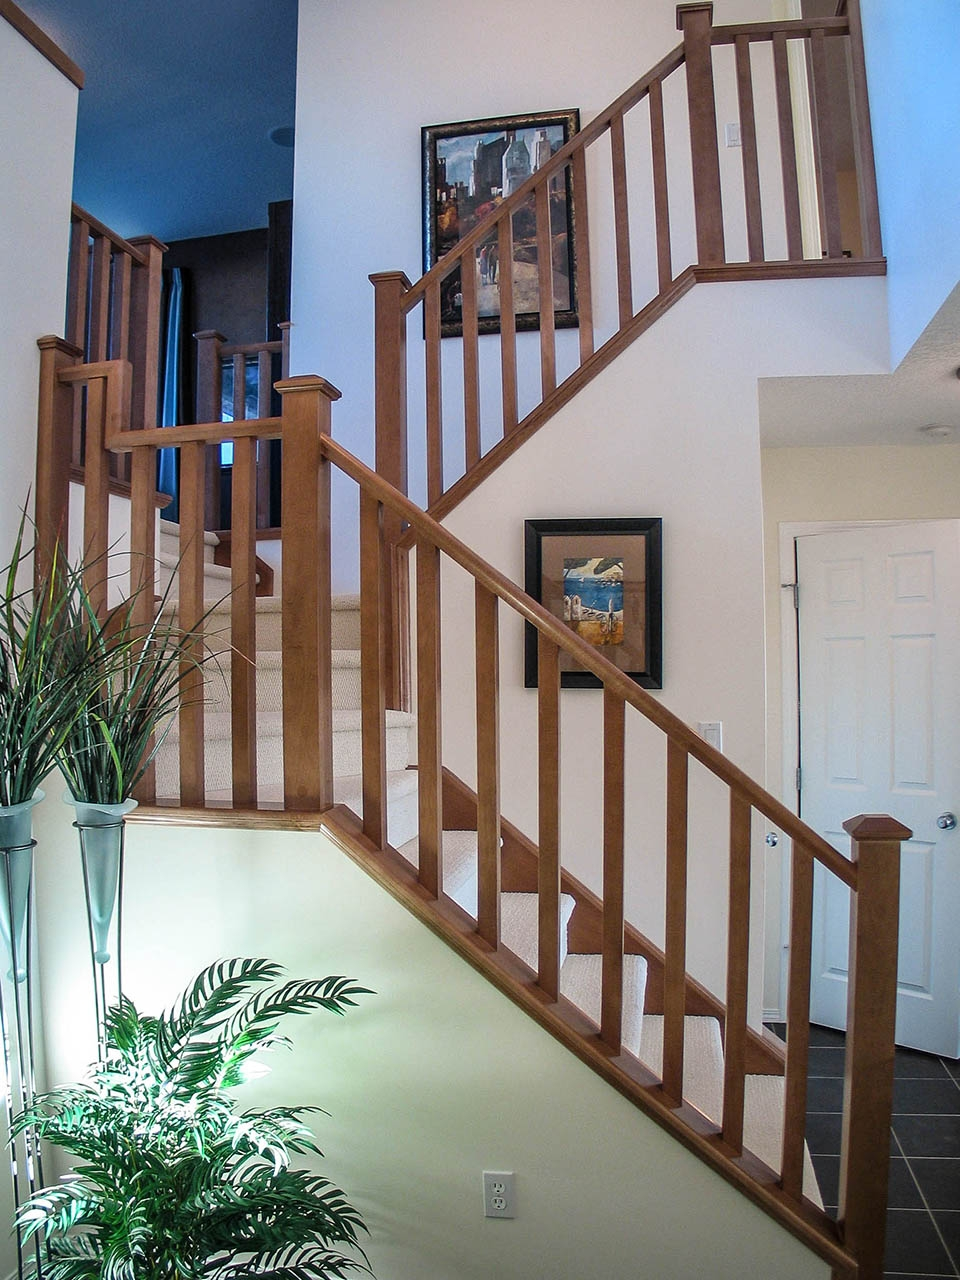 Mission Style Staircase Southern Staircase Artistic Stairs | Mission Style Hand Railings | Indoor | Bungalow | Front Porch | Art Craft | Hand